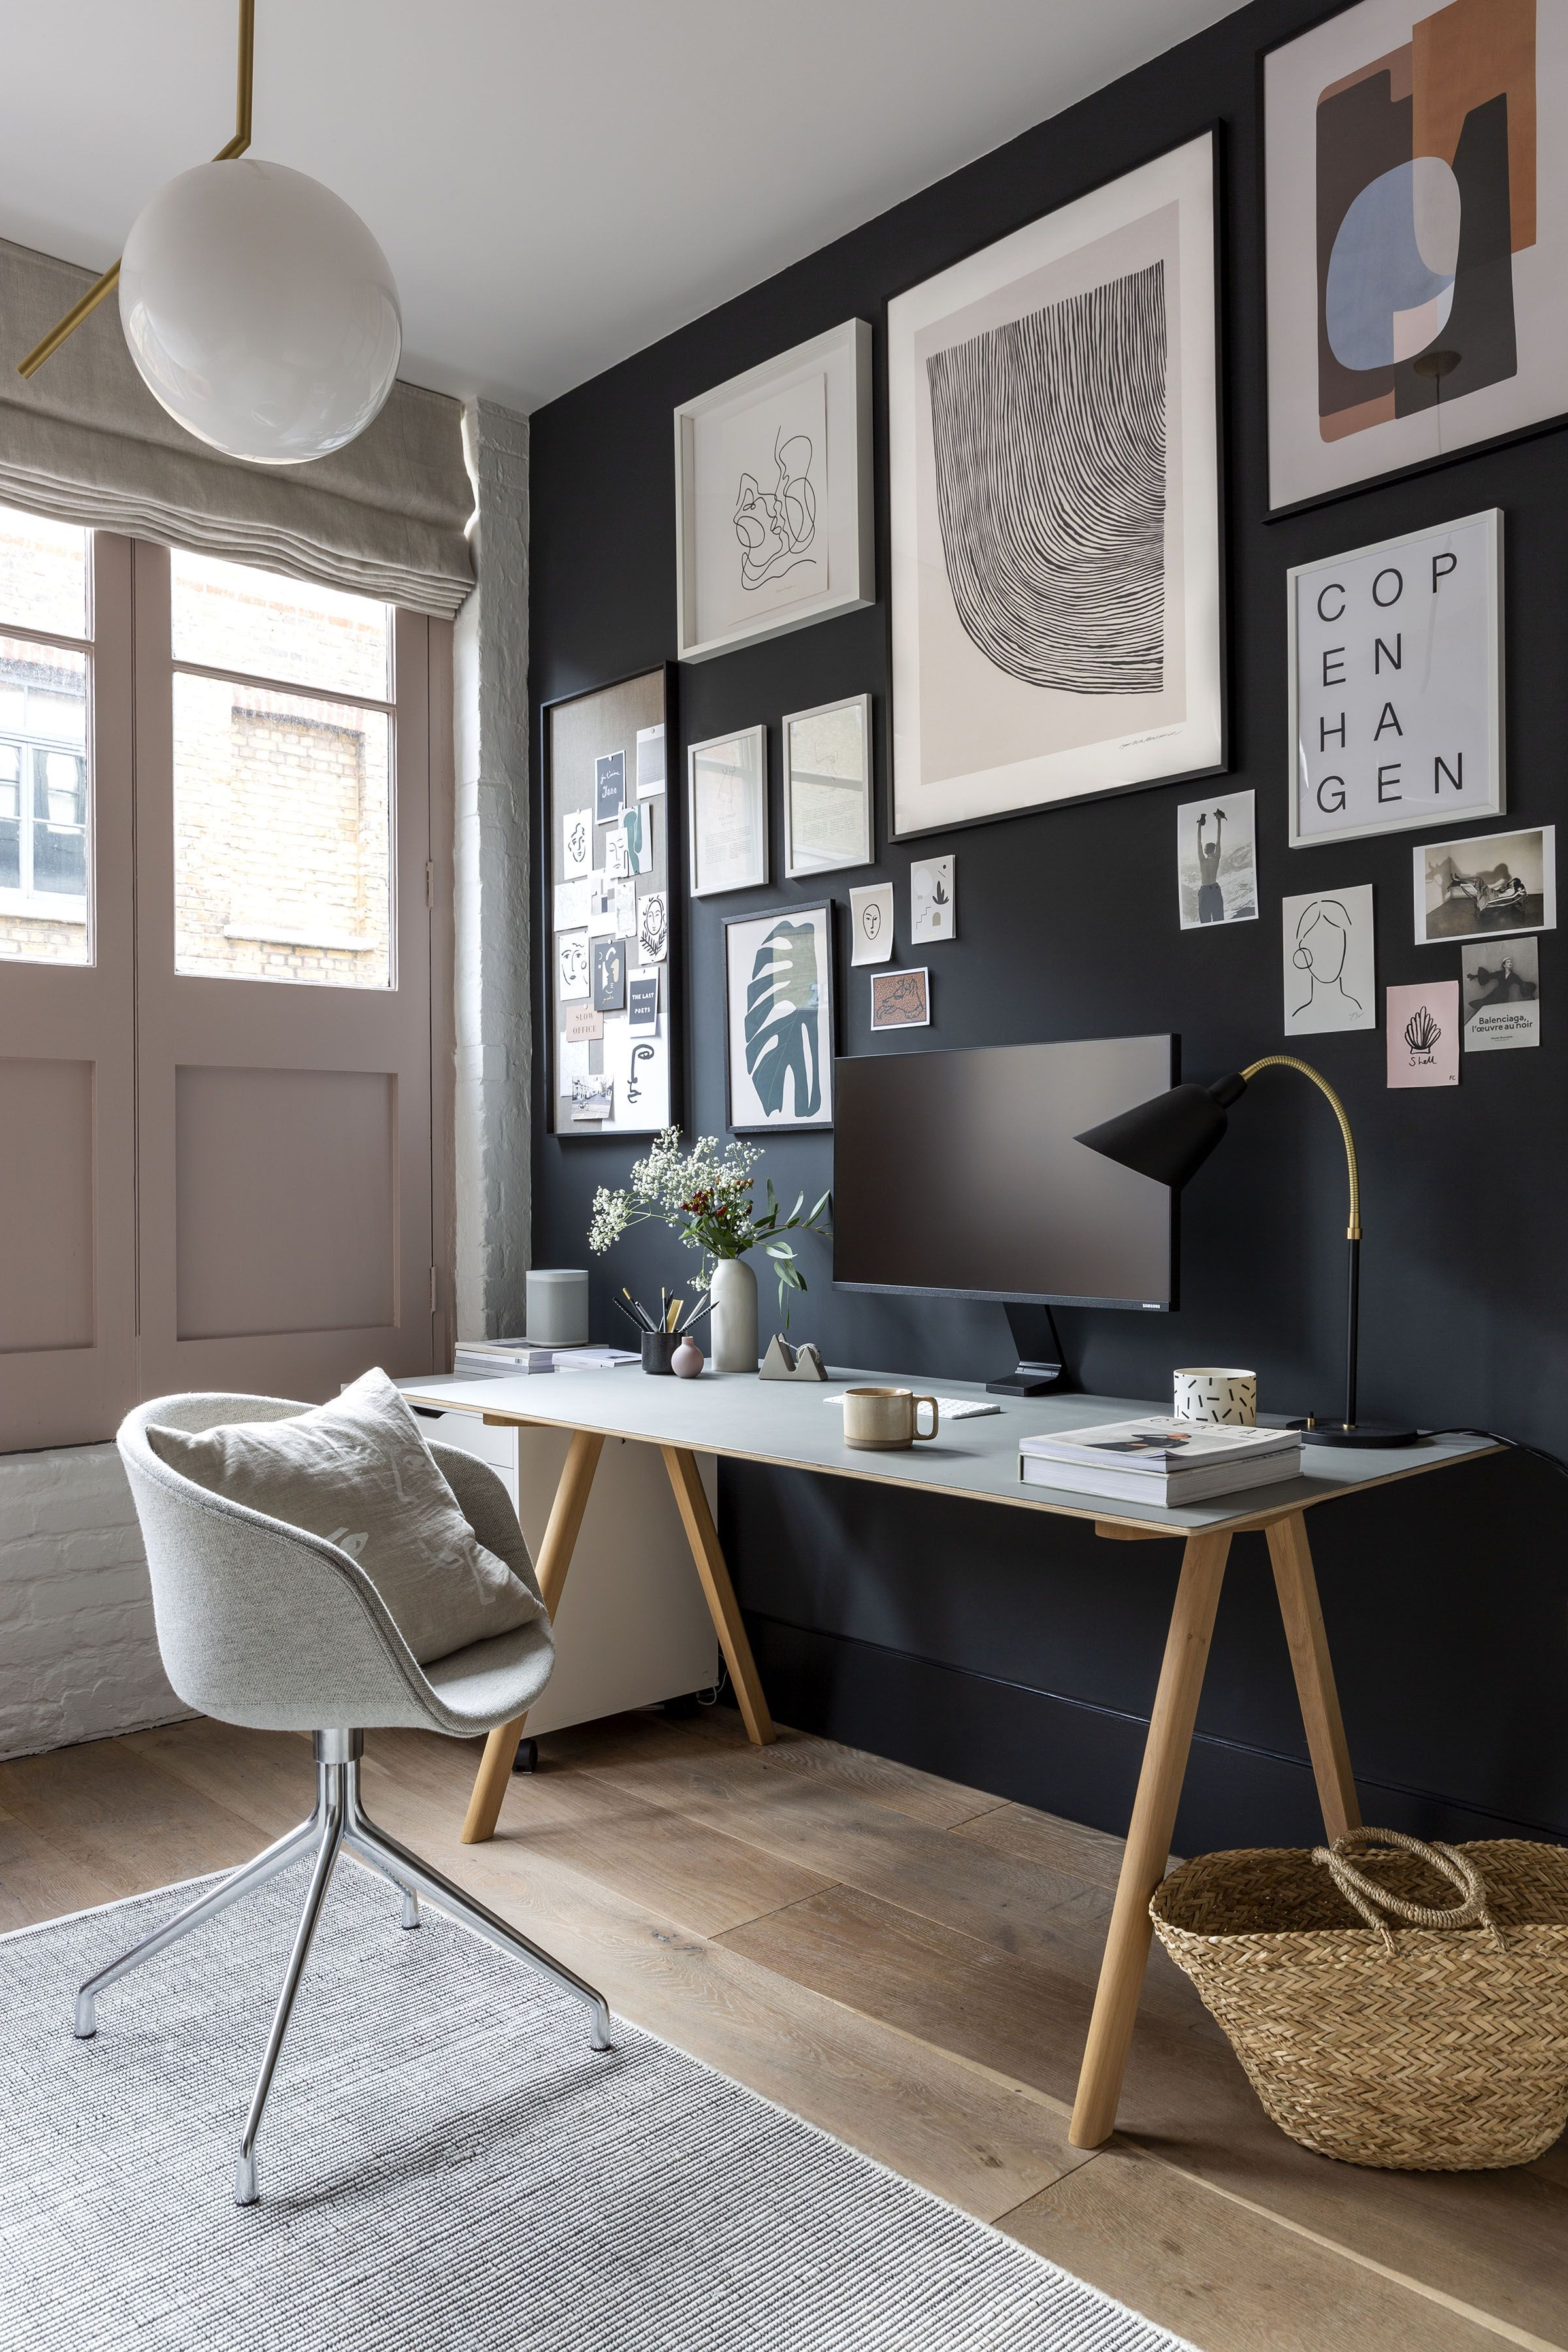 A cool, minimalist home office in a Shoreditch loft apartment, Image Credit - by cate st hill